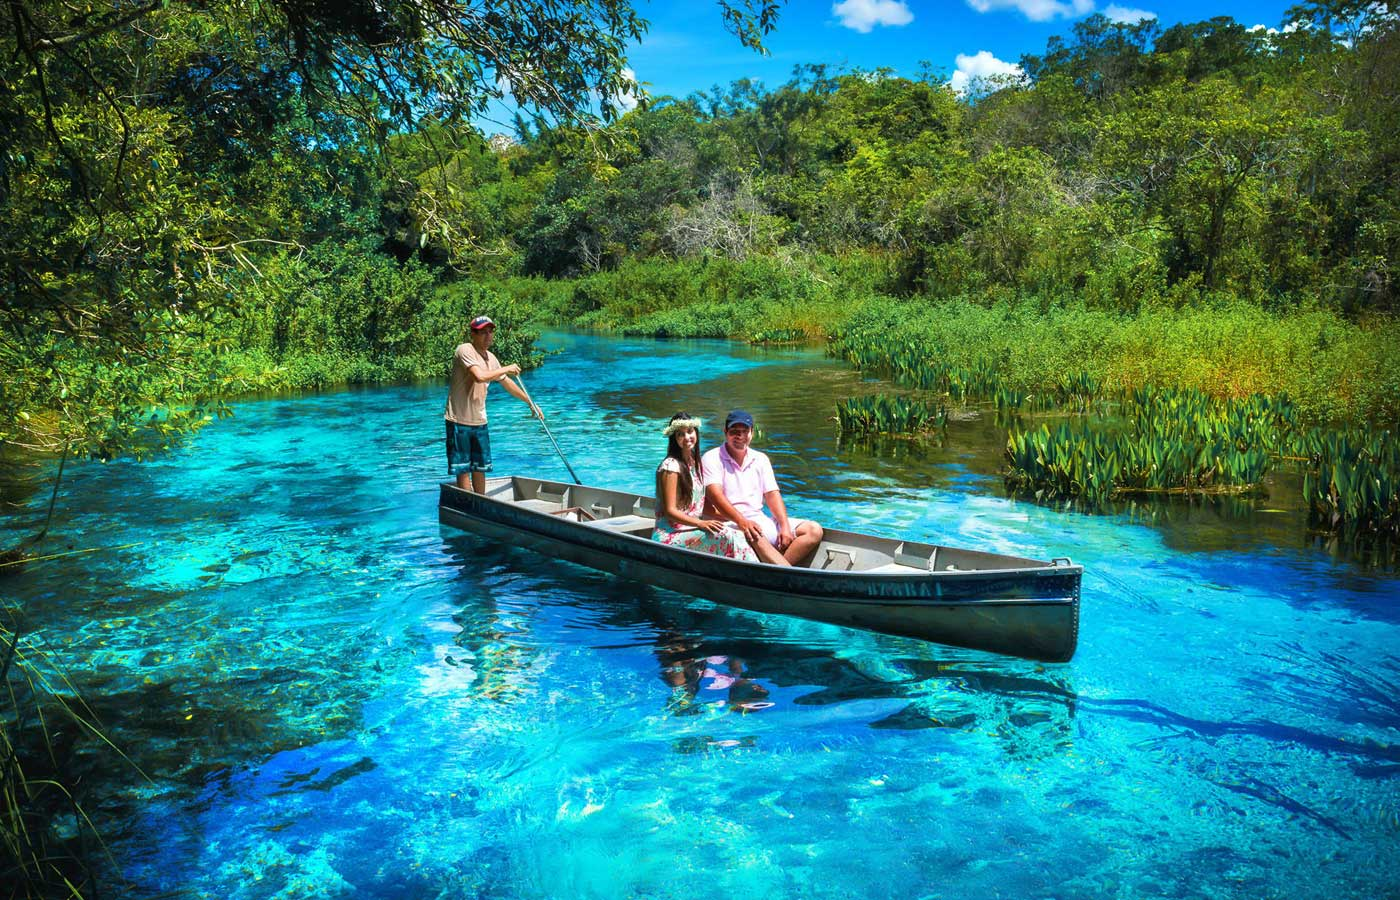 Boat tour at the blue turquoise Sucuri River in Bonito, Brazil